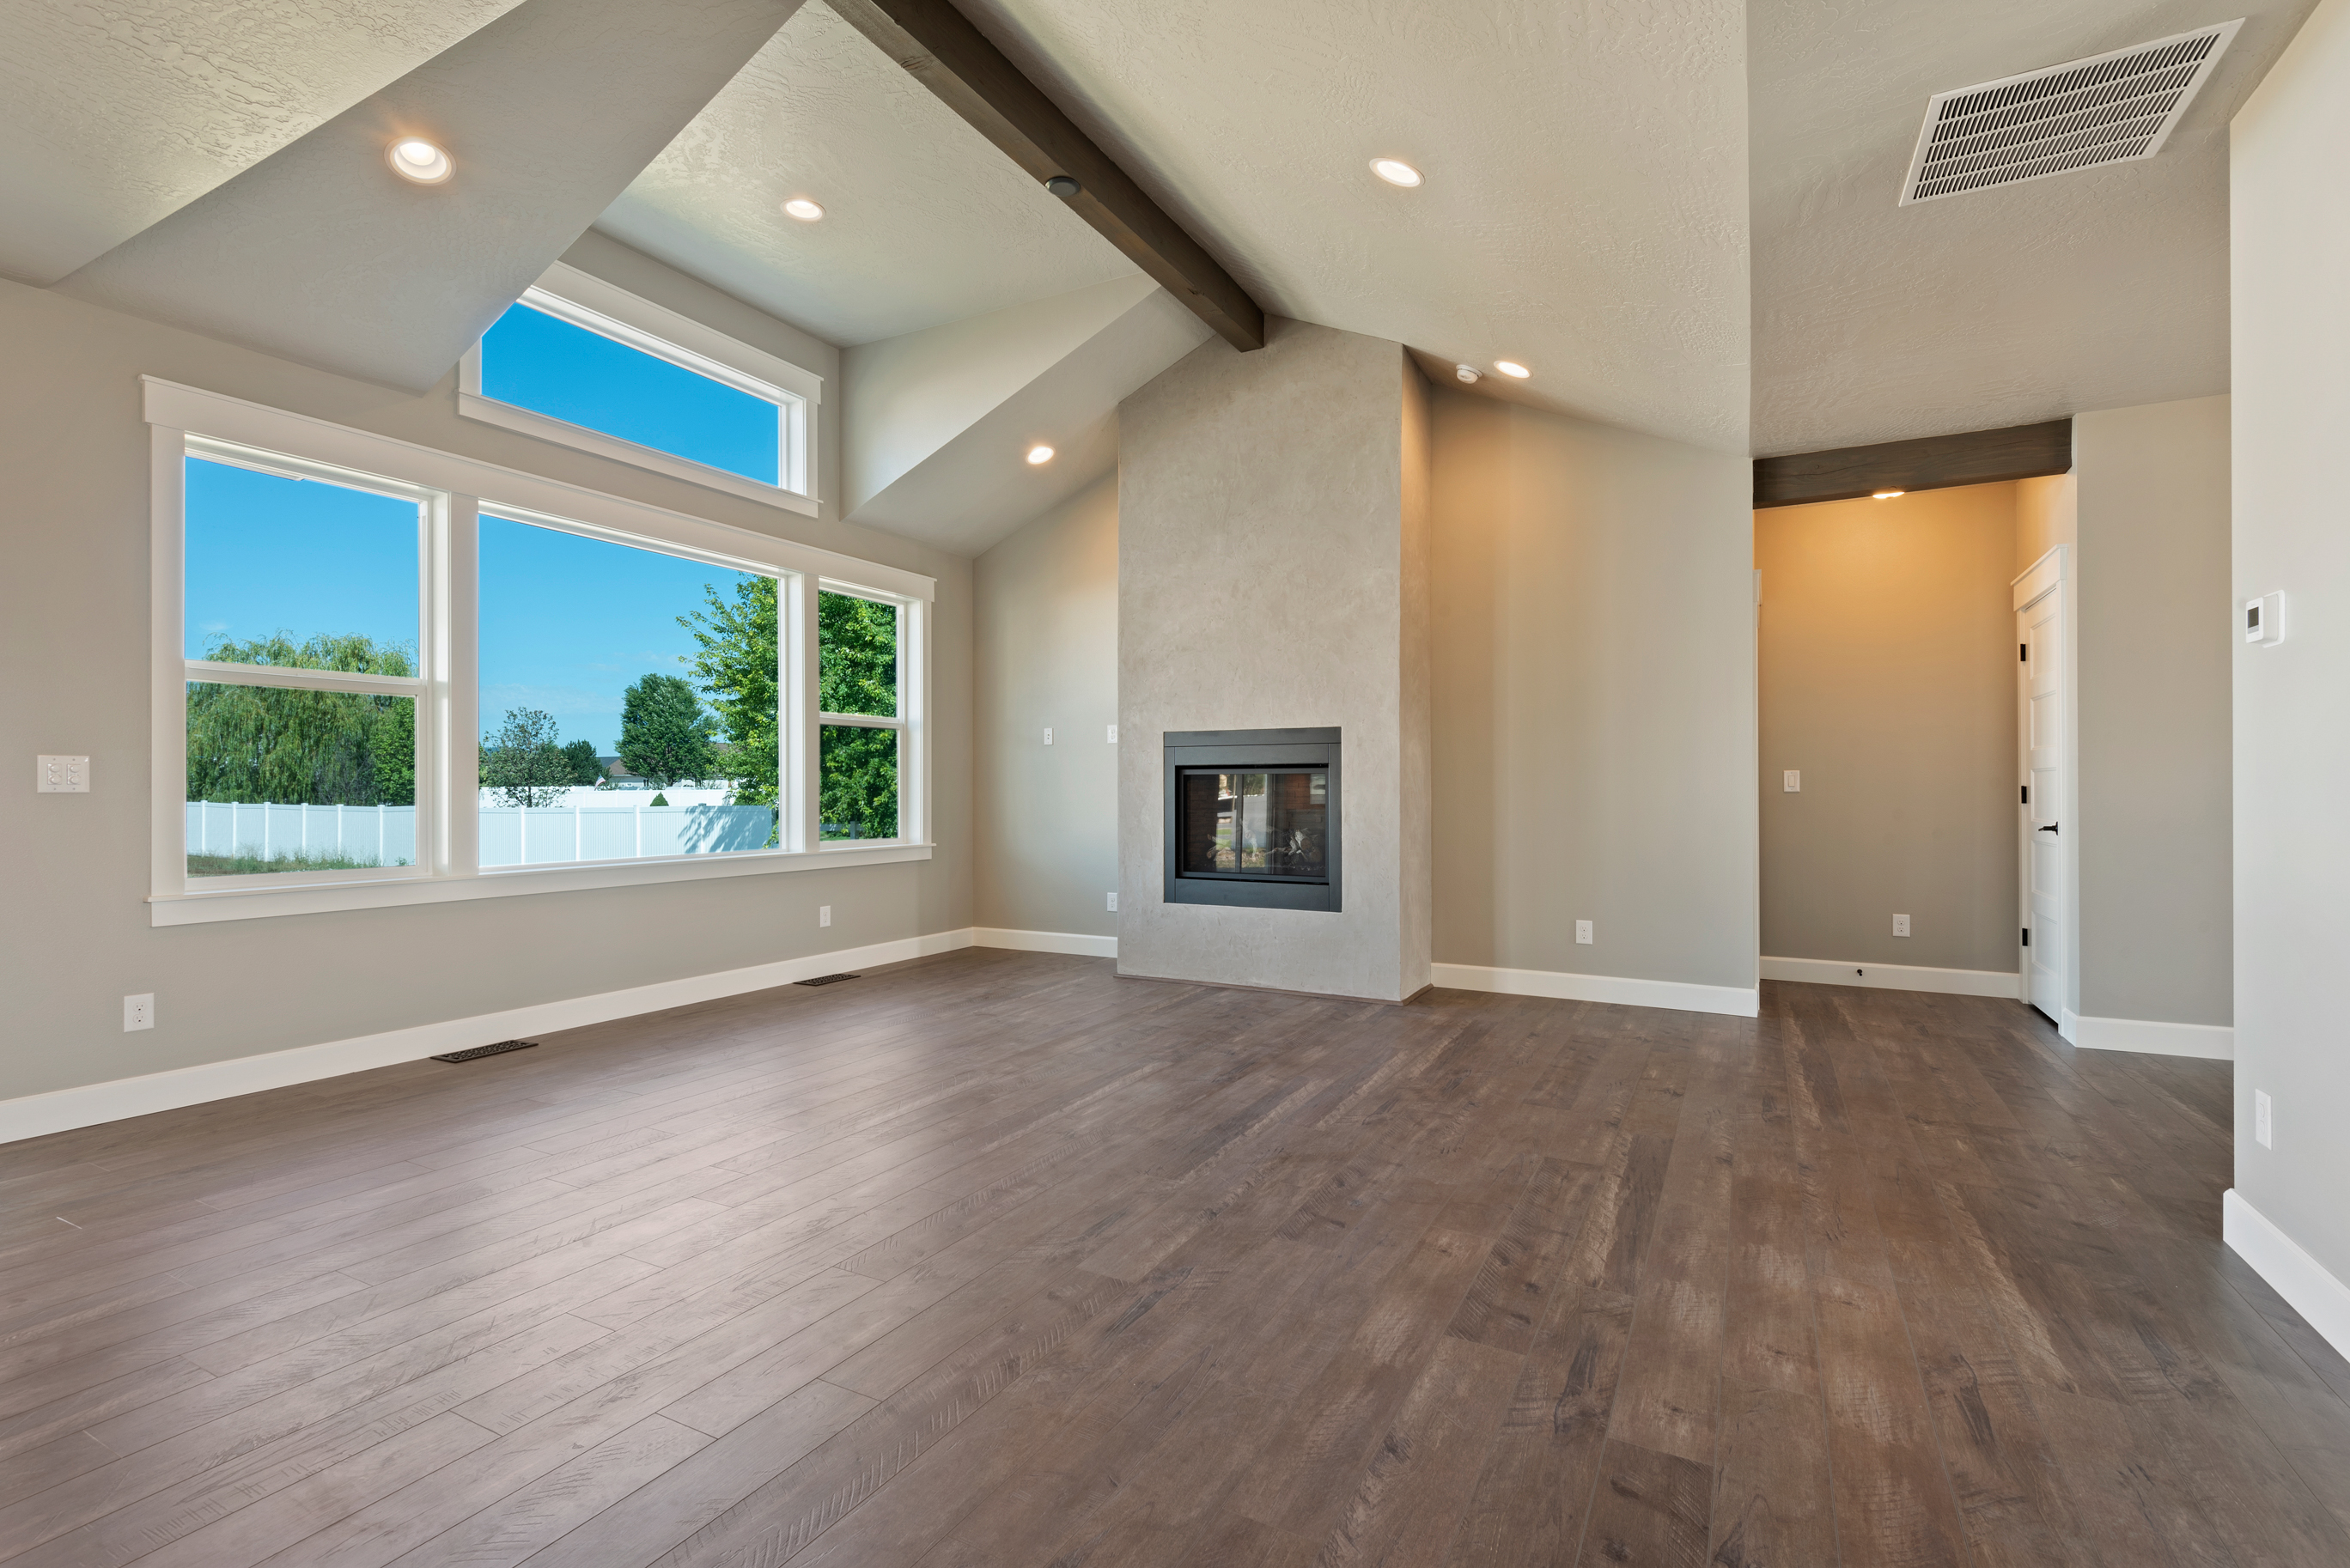 Open Floor Plan, Beautiful Fireplace and Flooring Detail